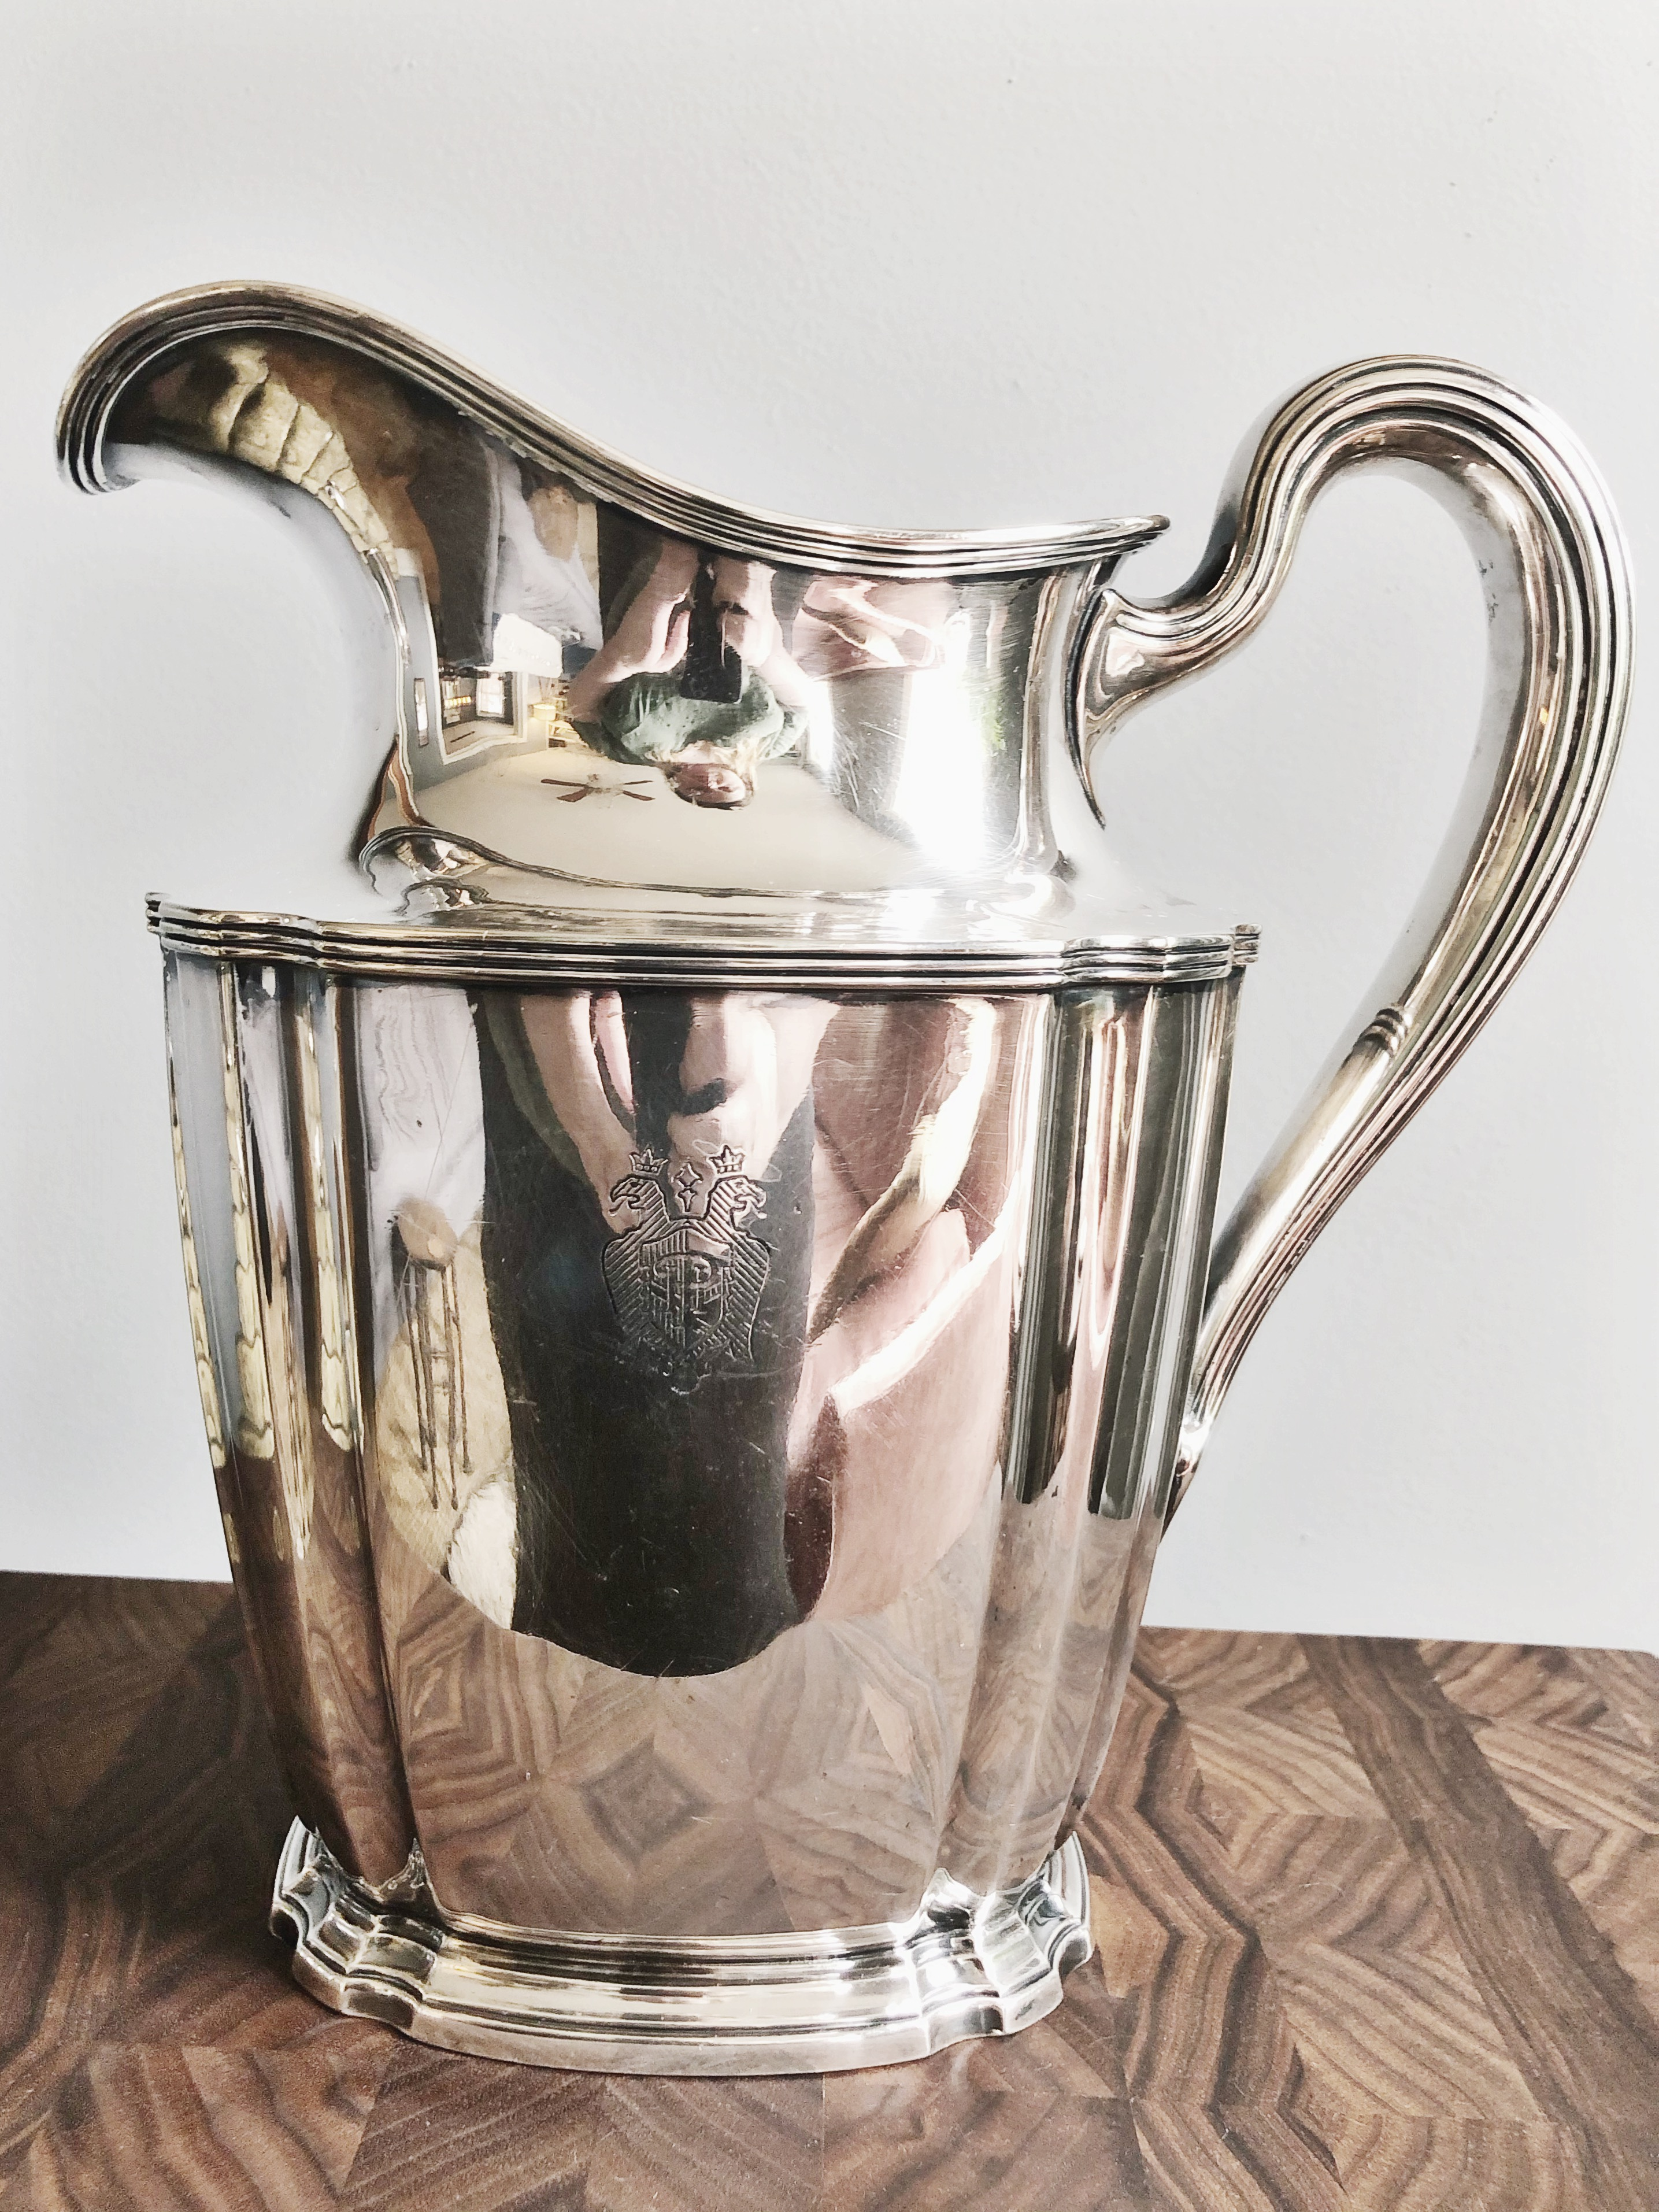 1909 Silver Plated Water Pitcher from The Palace Hotel in San Francisco